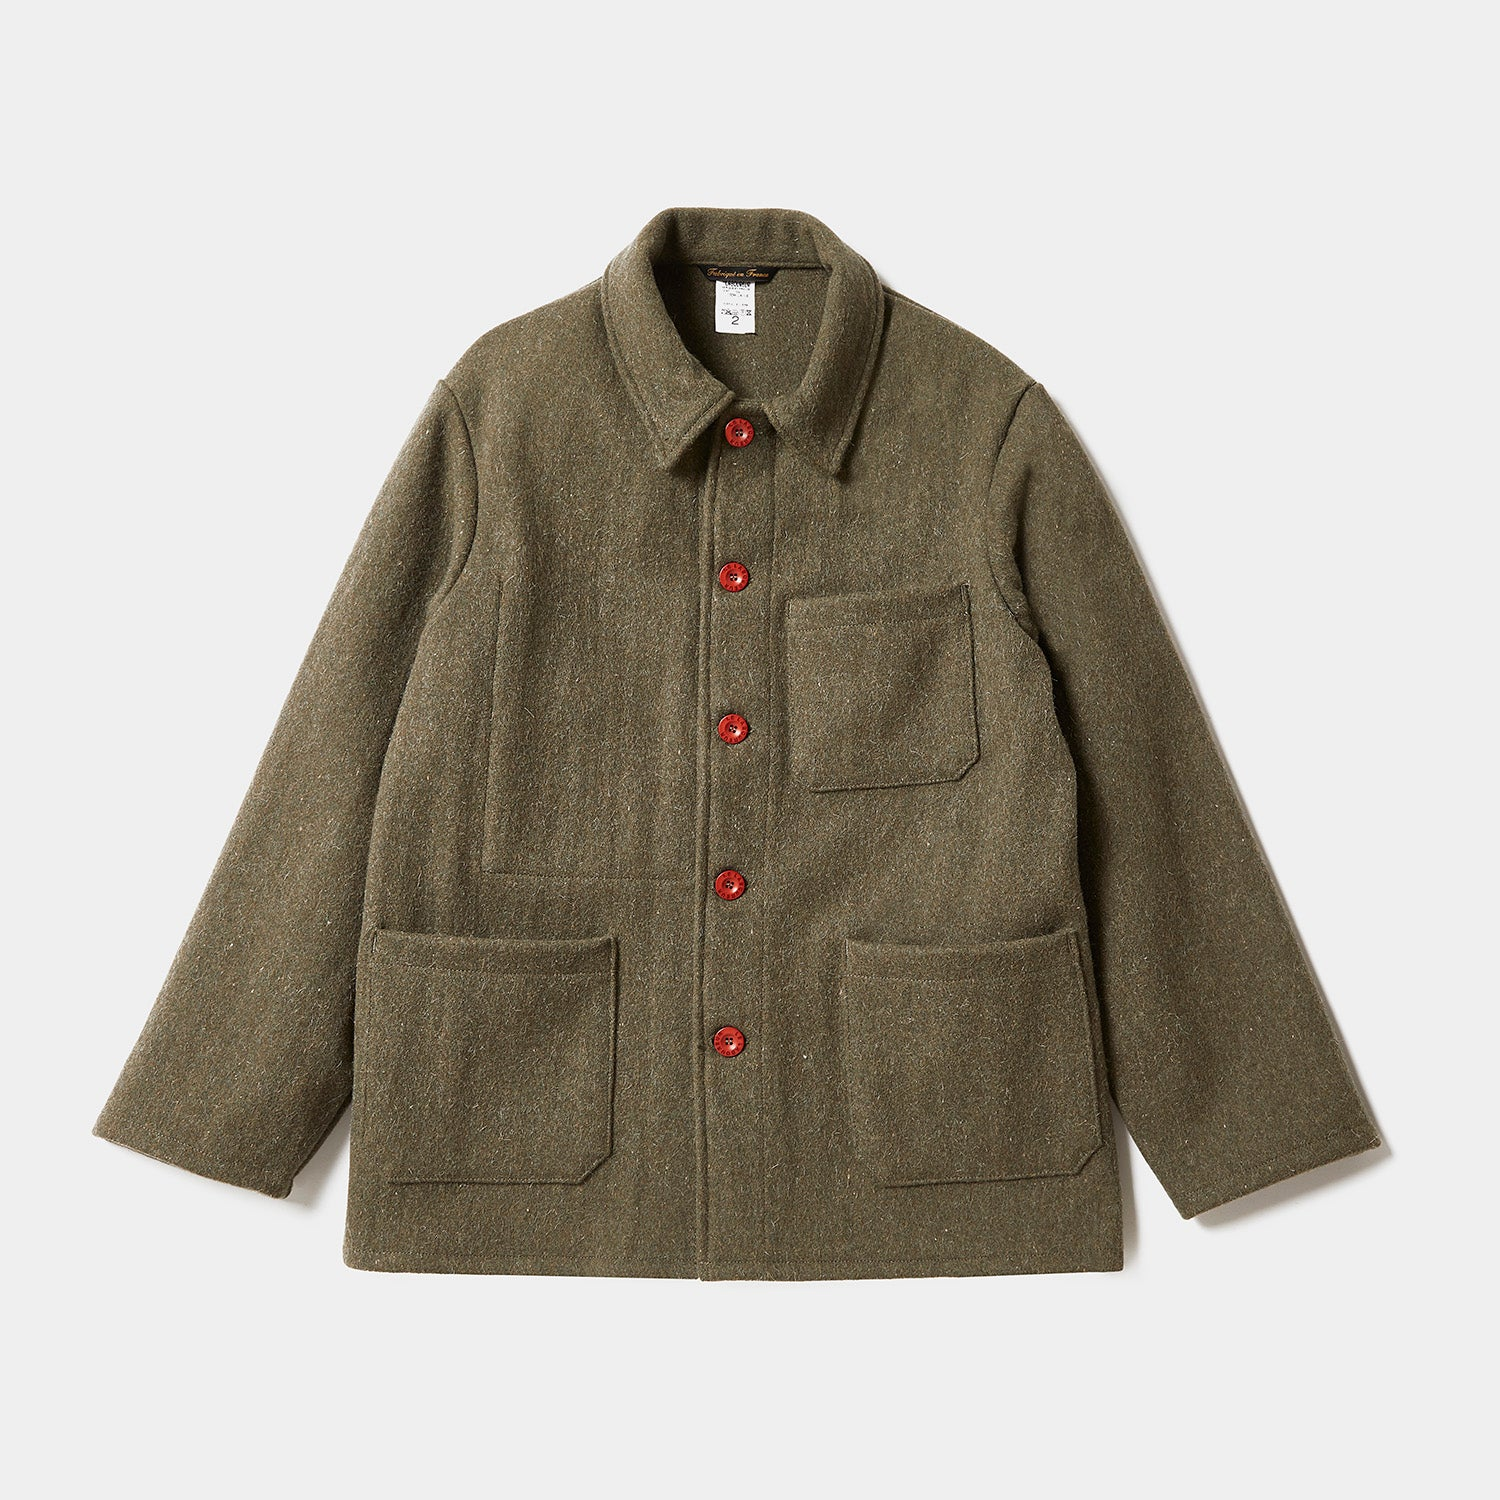 Le Laboureur Wool Work Jacket - Khaki